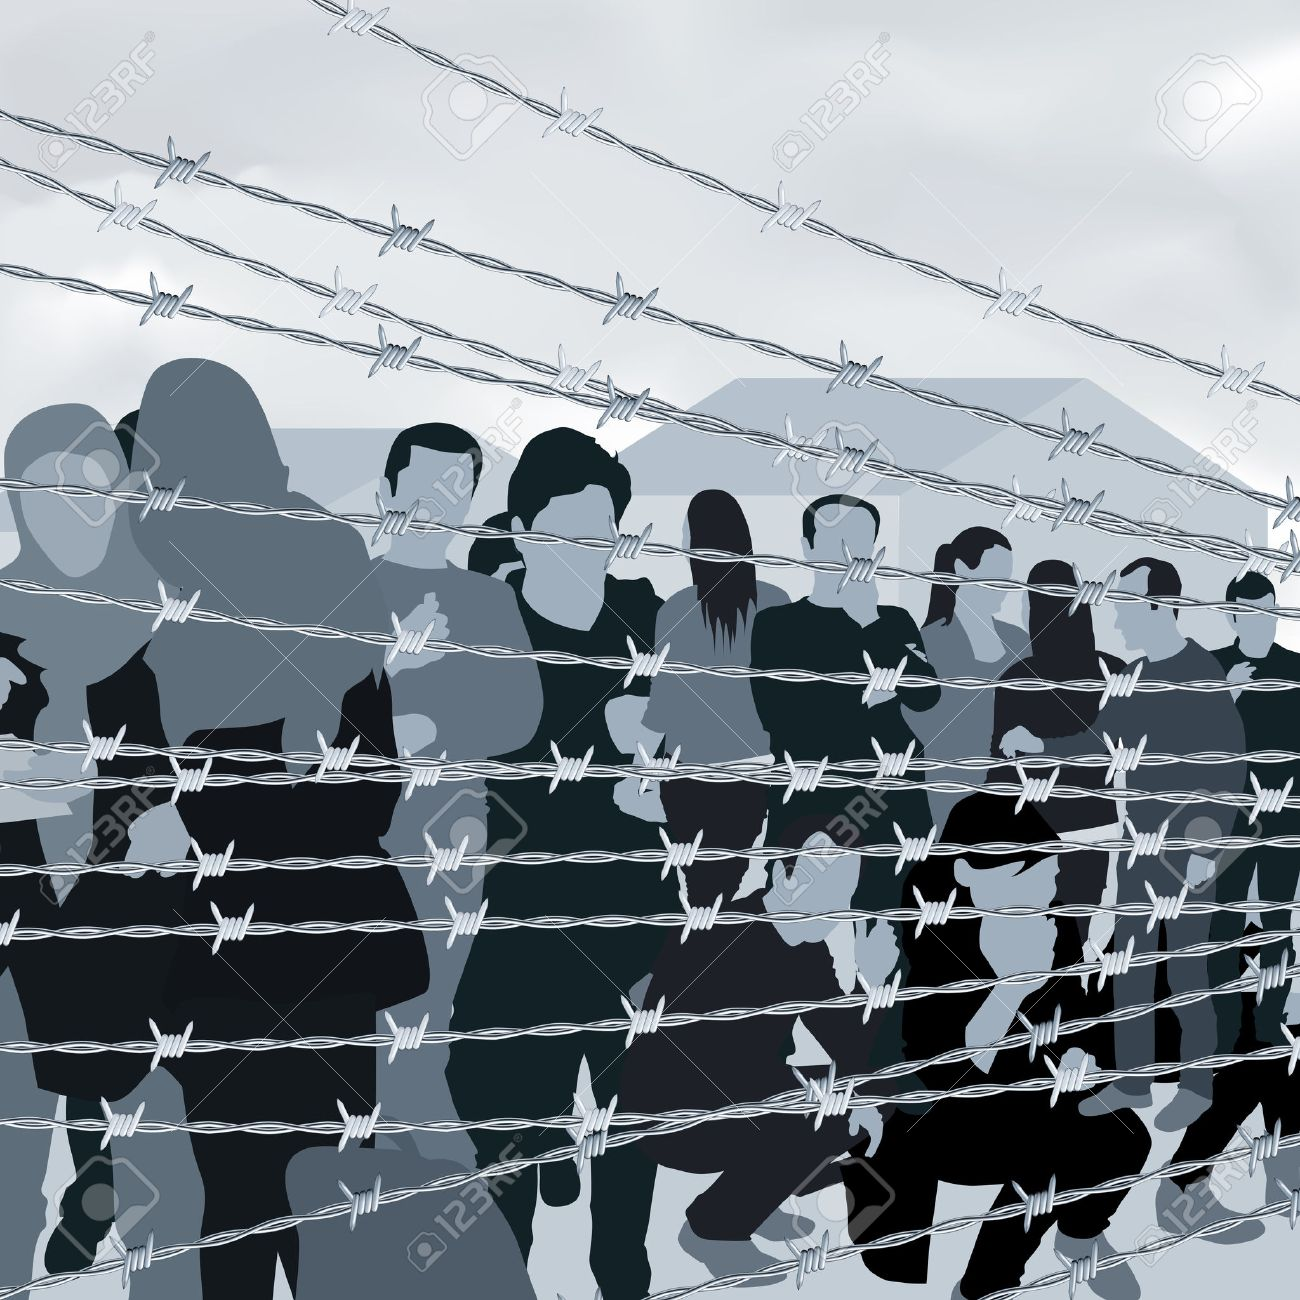 Refugees people behind barbed wire. Vector illustration - 50268864